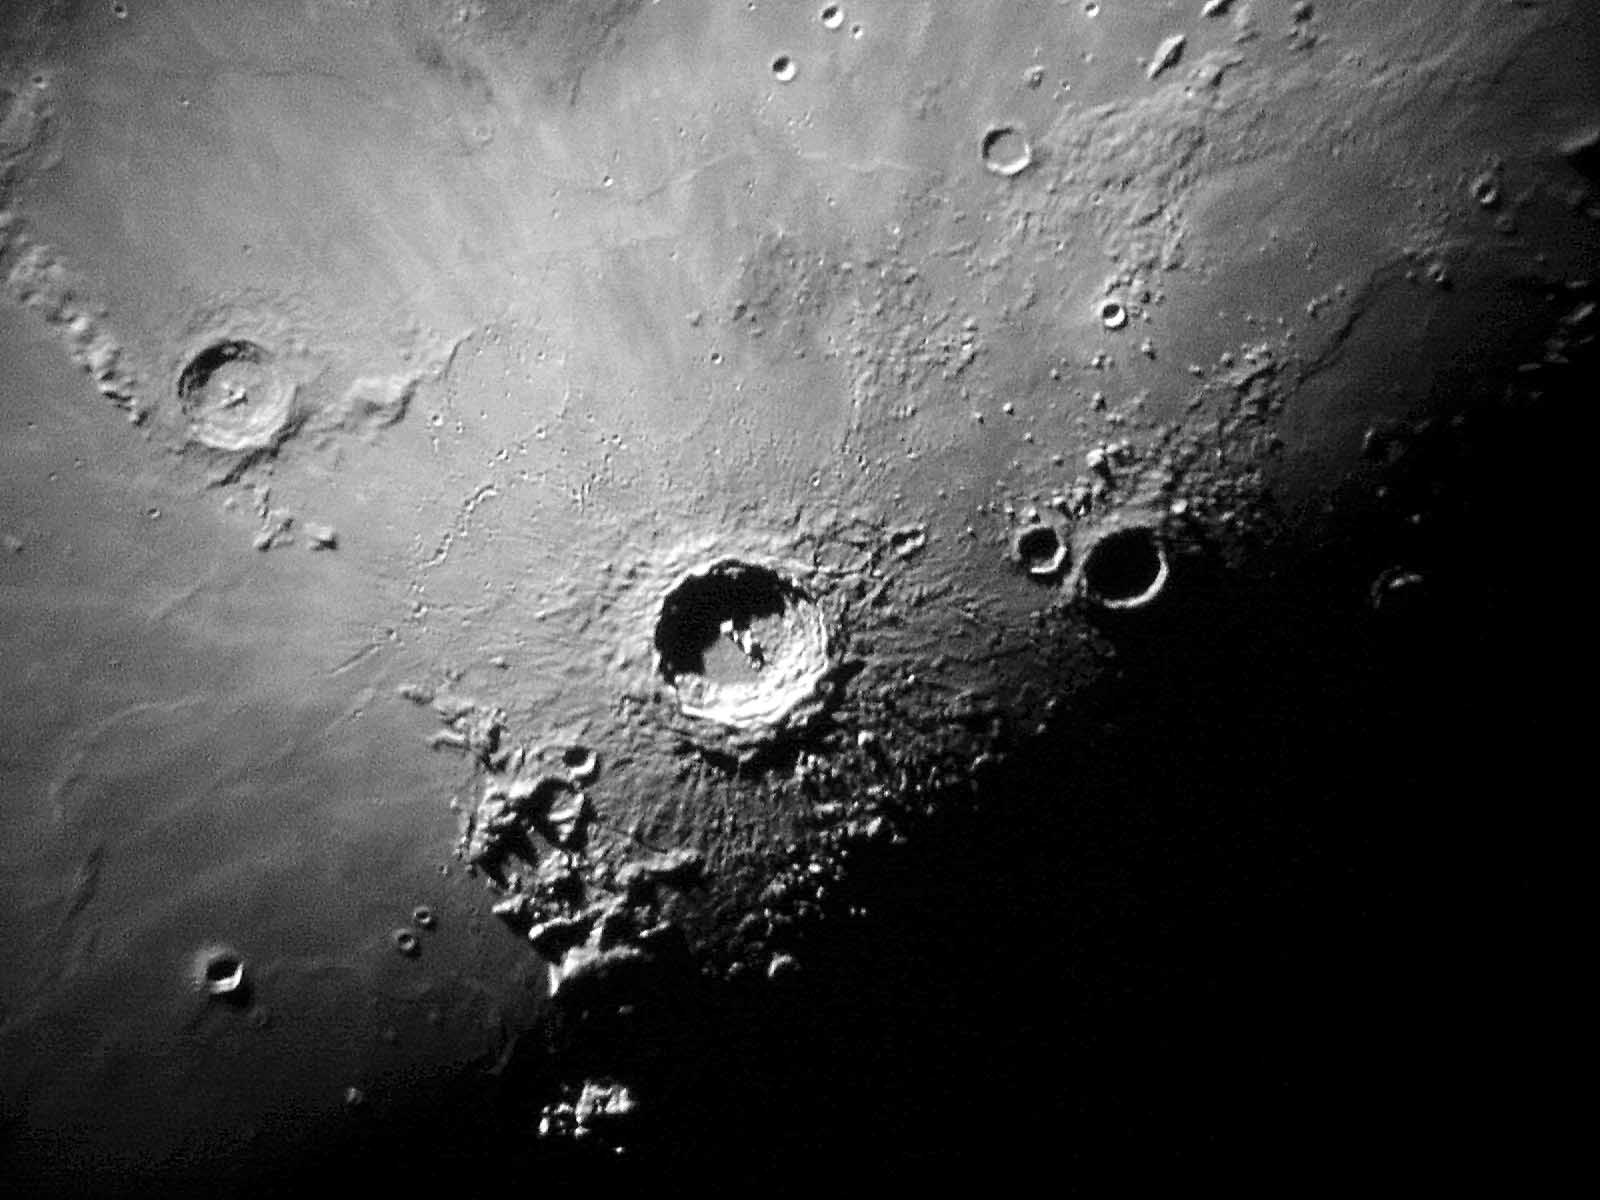 Asteroid Impacts Increased Million Years Ago Lunar Craters Reveal